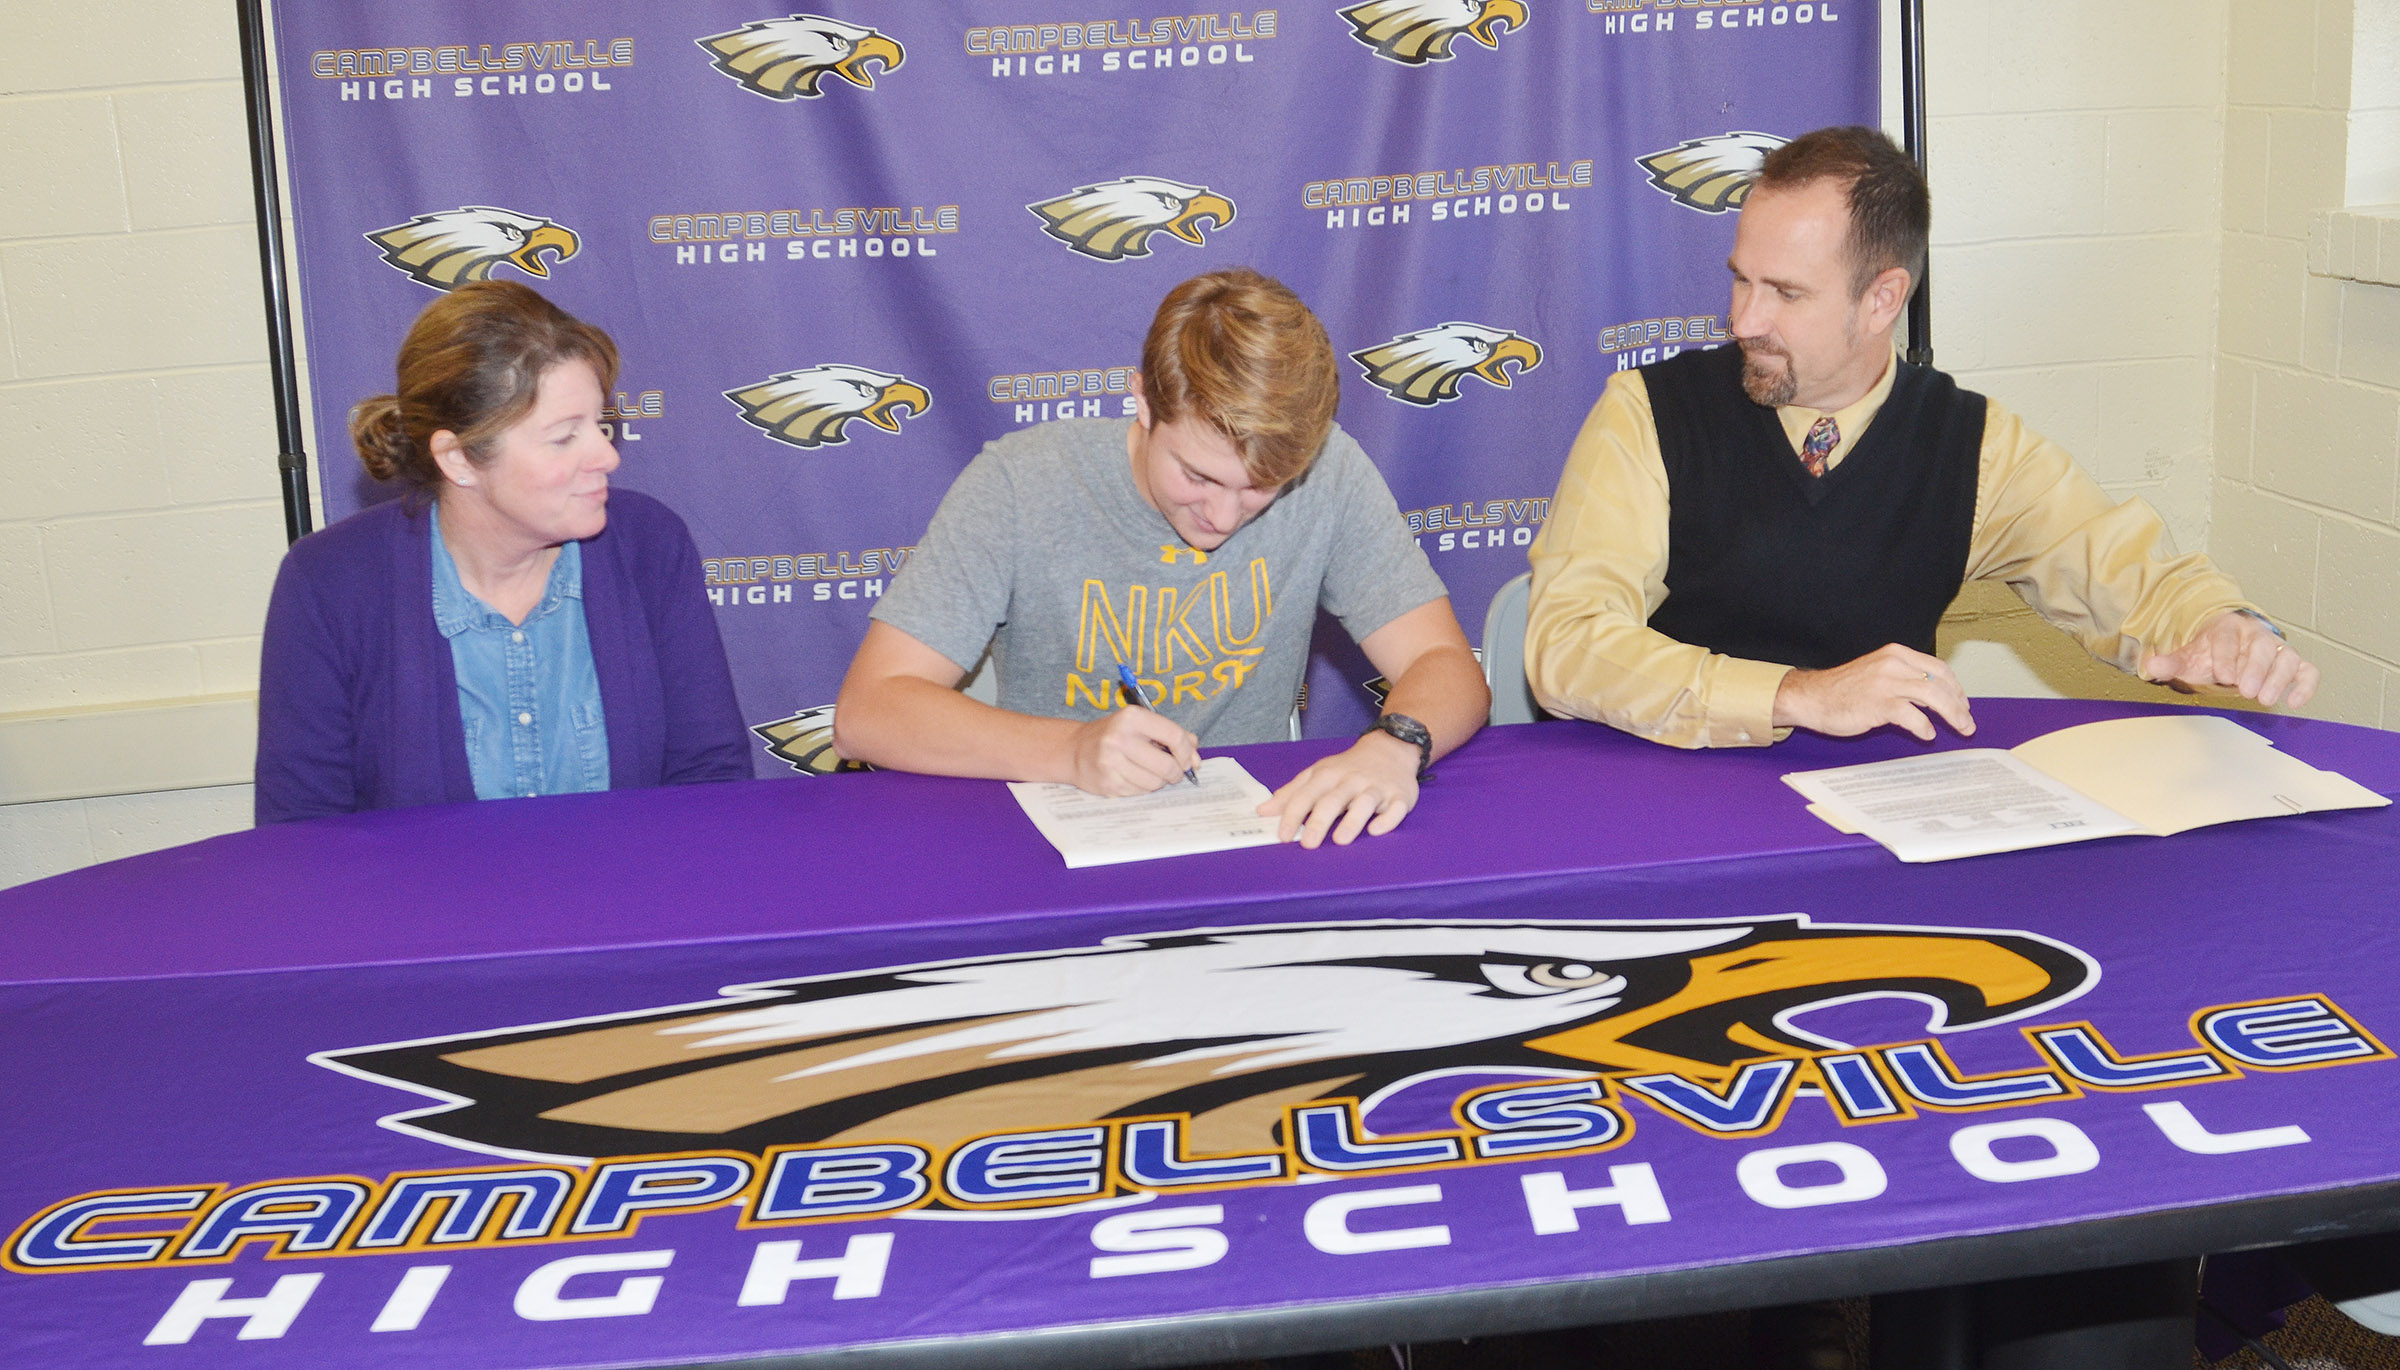 CHS boys' golf player Alex Doss will continue his academic and athletic career at Northern Kentucky University. He recently signed his scholarship paperwork with his parents, Steve and Dee Doss. Mrs. Doss is the college and career readiness counselor at CHS, and Mr. Doss is an exceptional child educator at CHS.